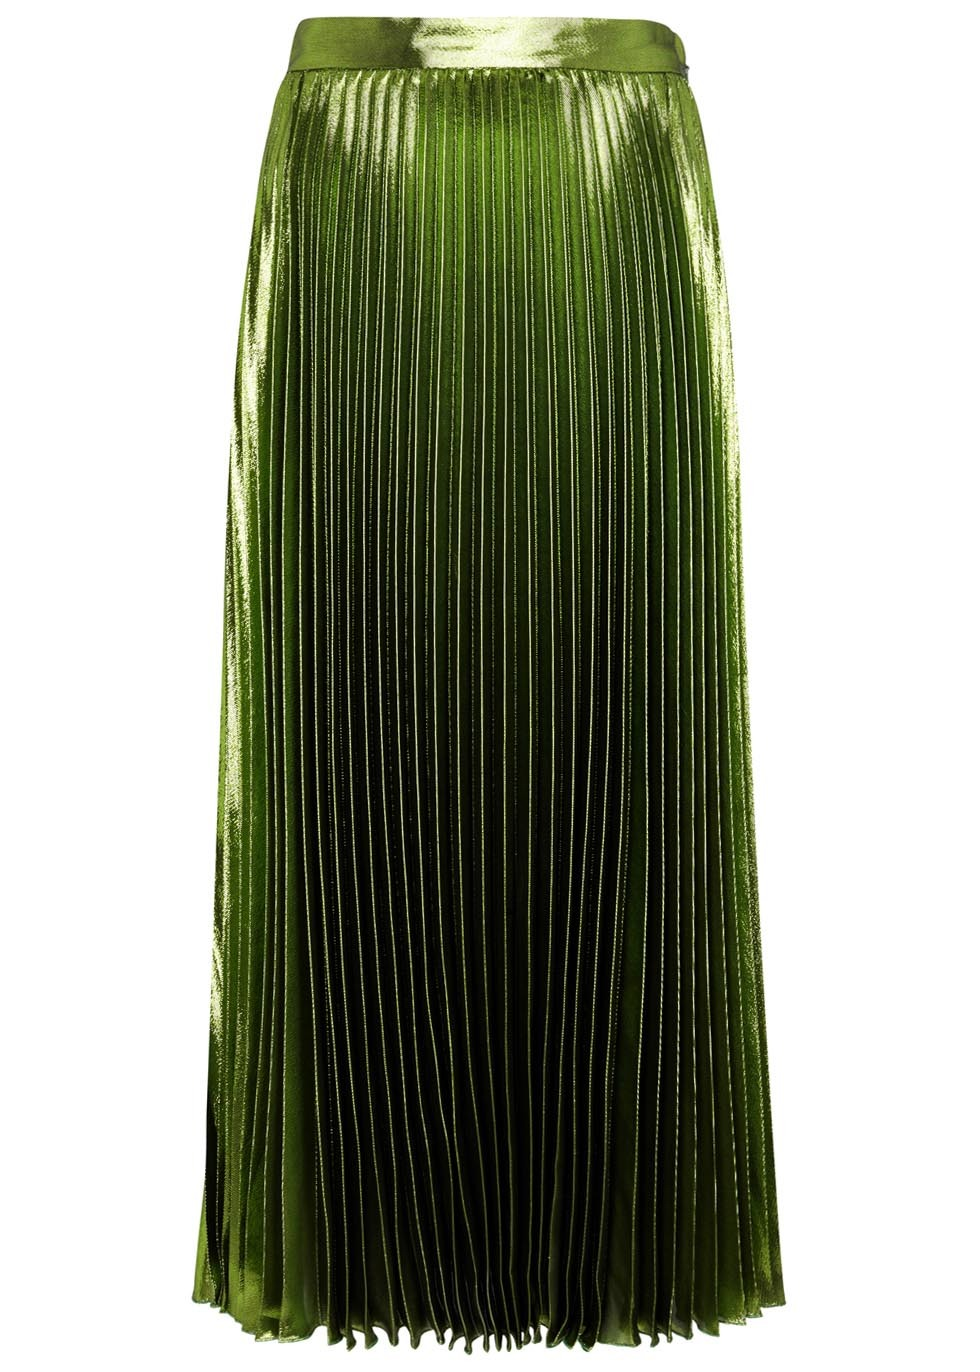 Green Silk Blend Lamé Skirt - pattern: plain; length: ankle length; fit: body skimming; style: pleated; waist: mid/regular rise; predominant colour: dark green; occasions: evening; fibres: silk - mix; texture group: silky - light; pattern type: fabric; season: s/s 2016; wardrobe: event